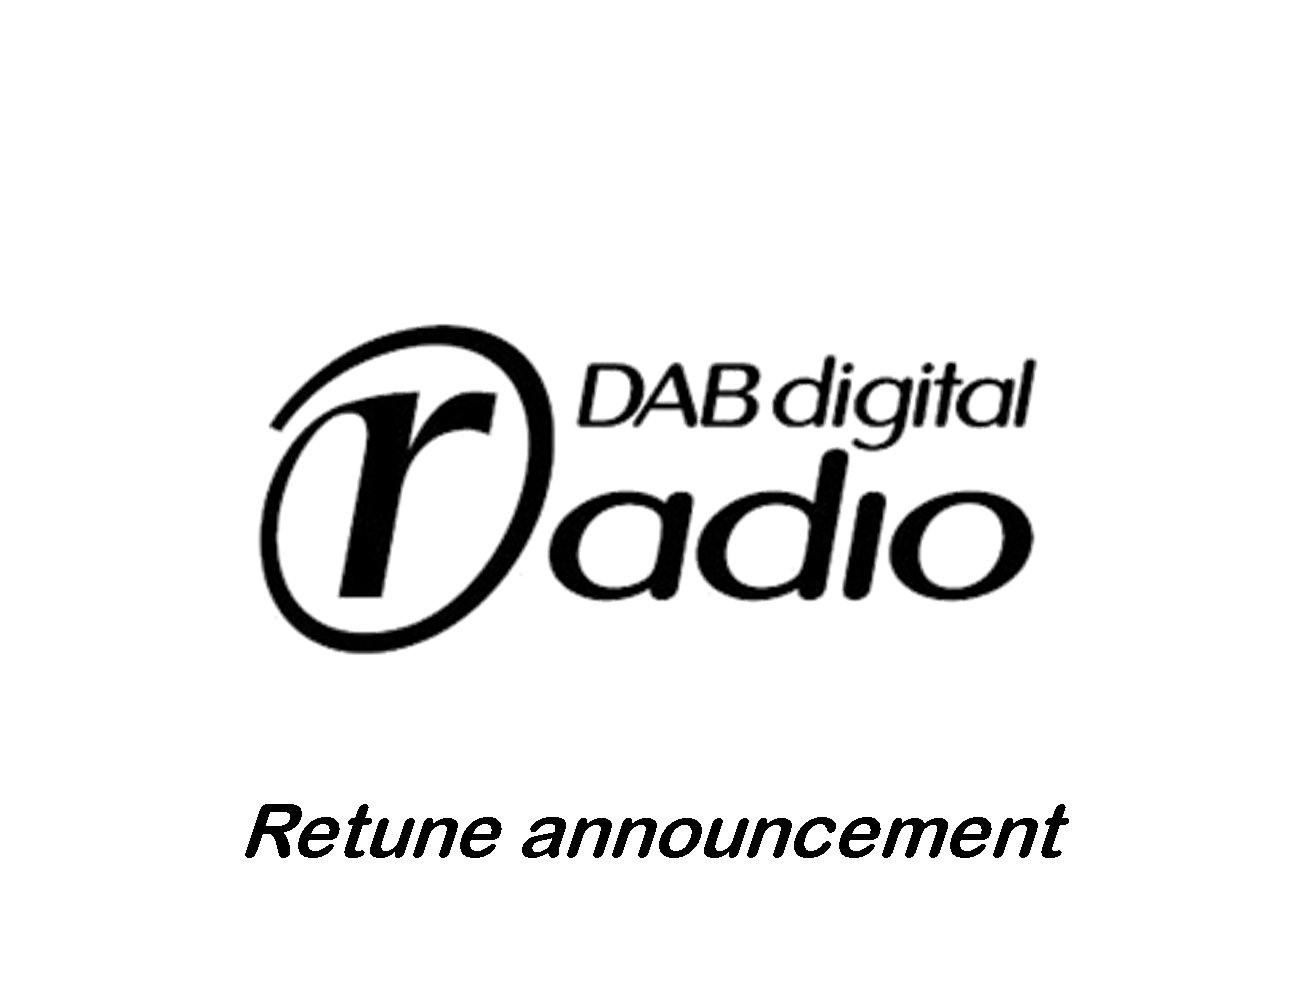 DAB Digital Radio Retune